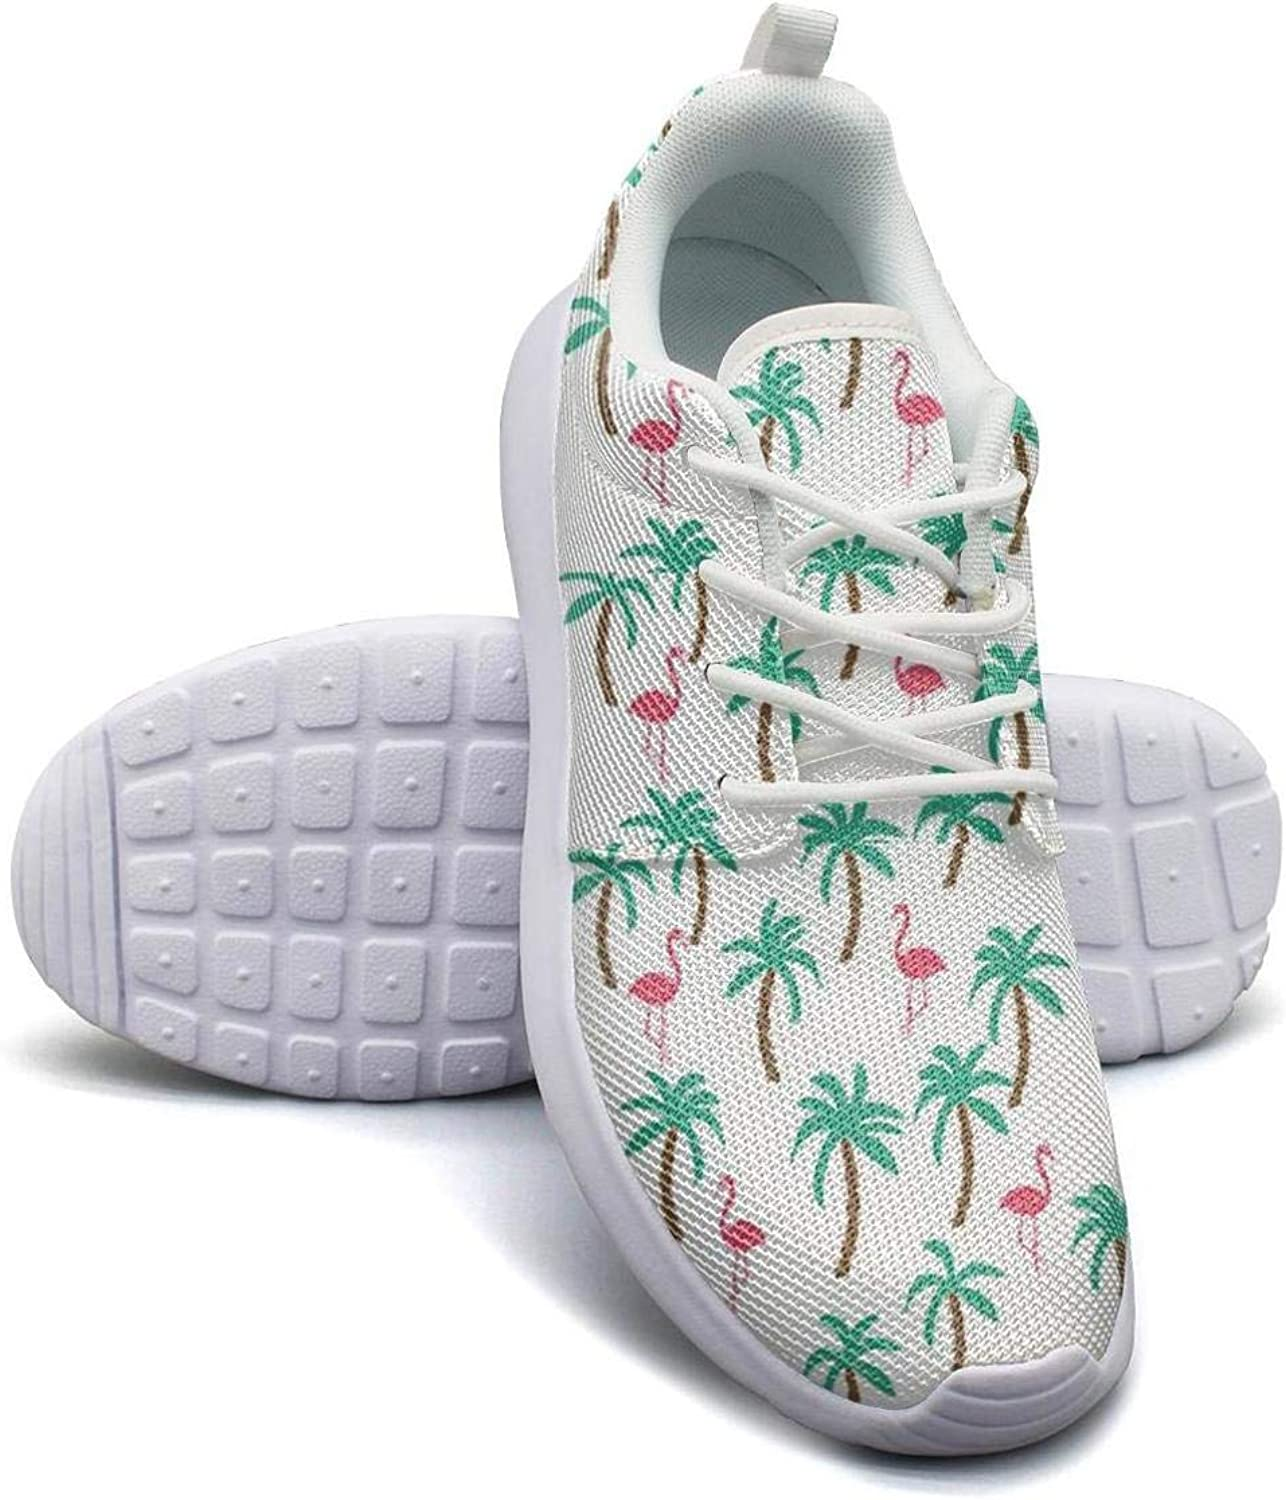 Tropical palm trees flamingos mesh lightweight shoes for women lace up sports baseball Sneakers shoes